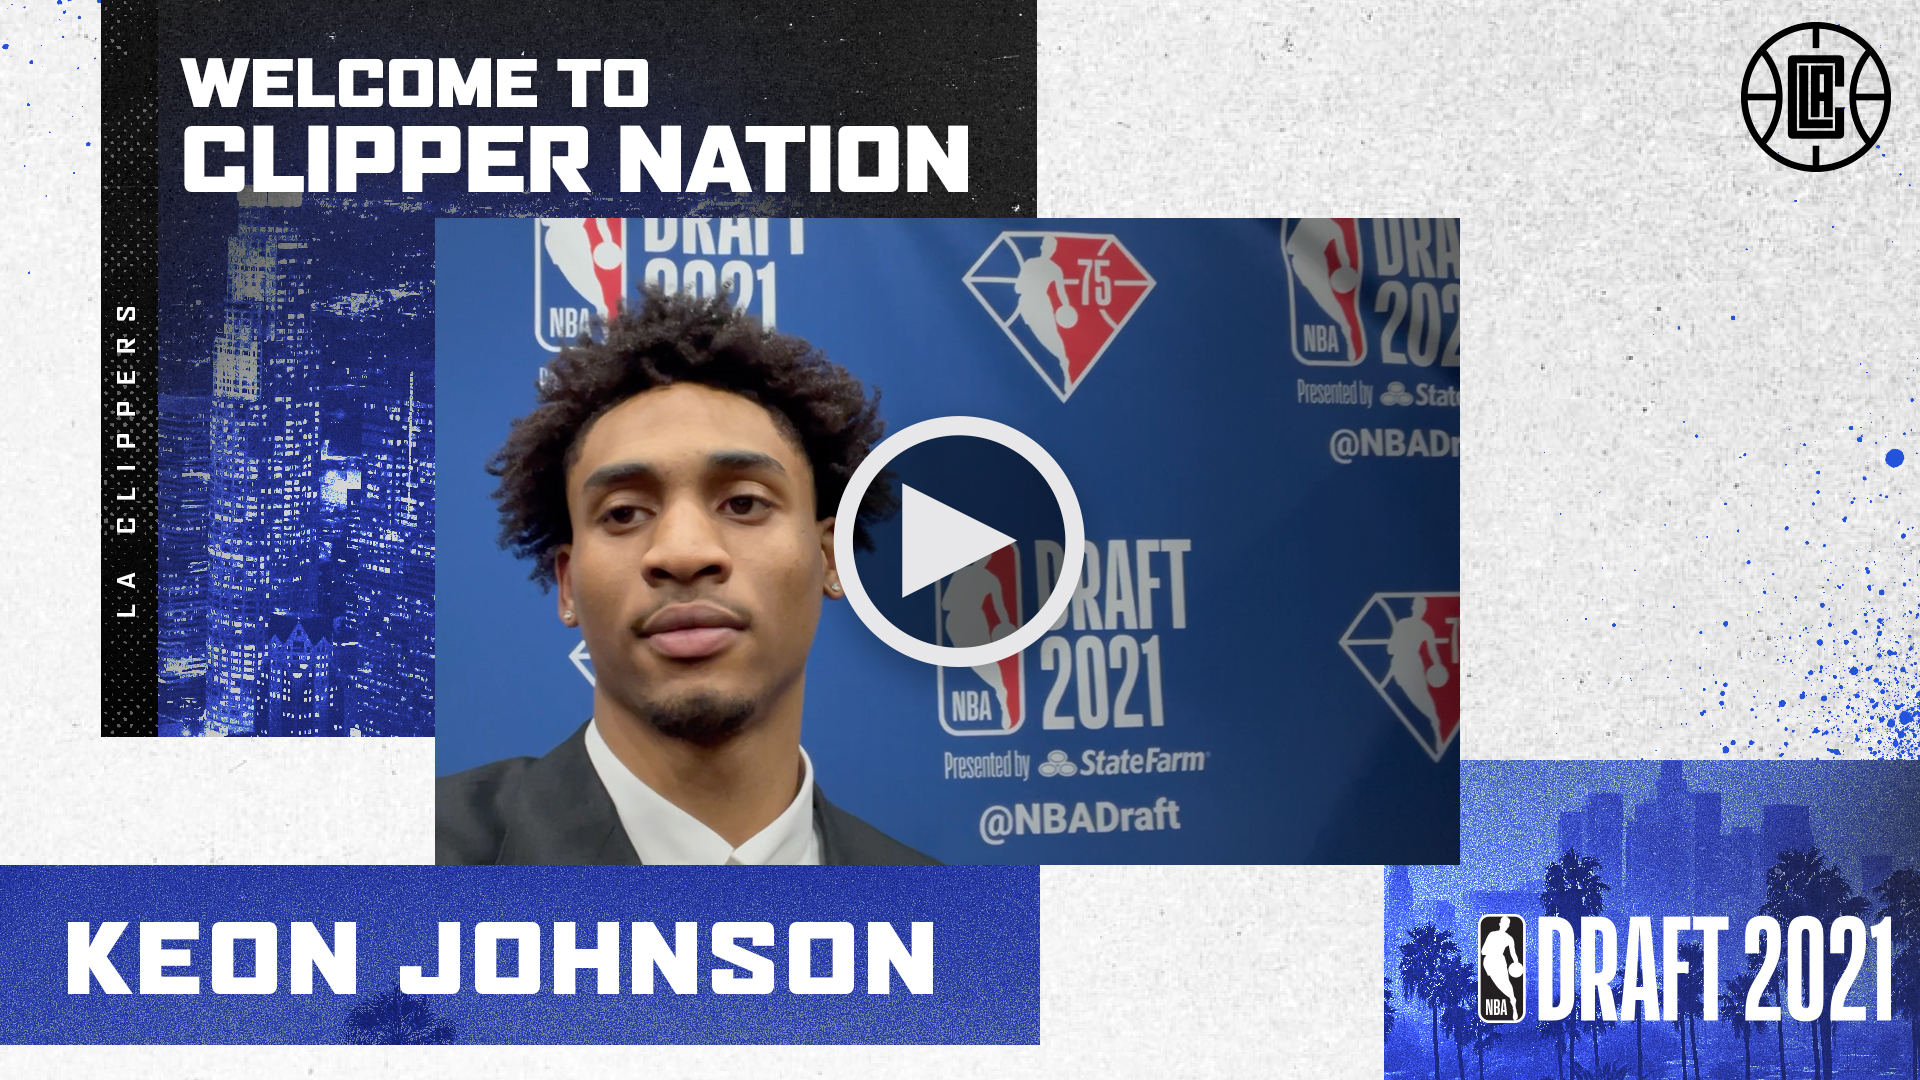 Welcome to Clipper Nation, Keon Johnson